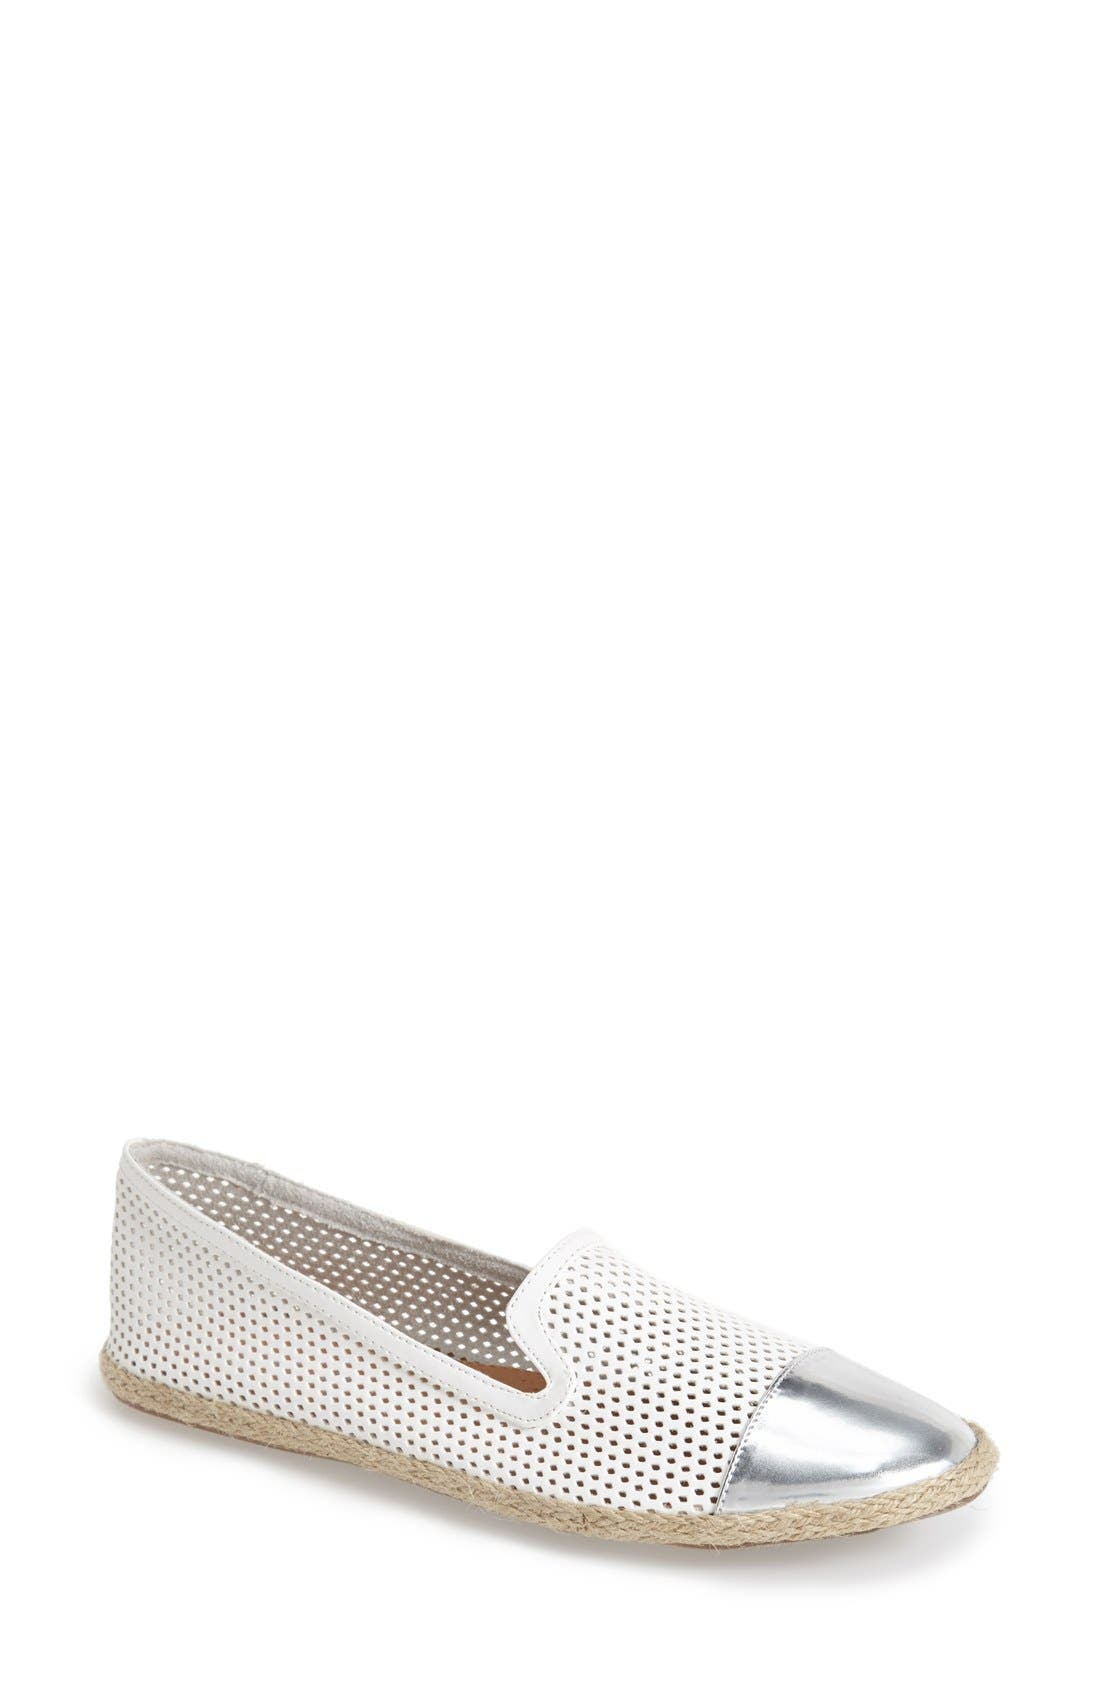 Alternate Image 1 Selected - KENDALL + KYLIE Madden Girl 'Poppyy' Espadrille Flat